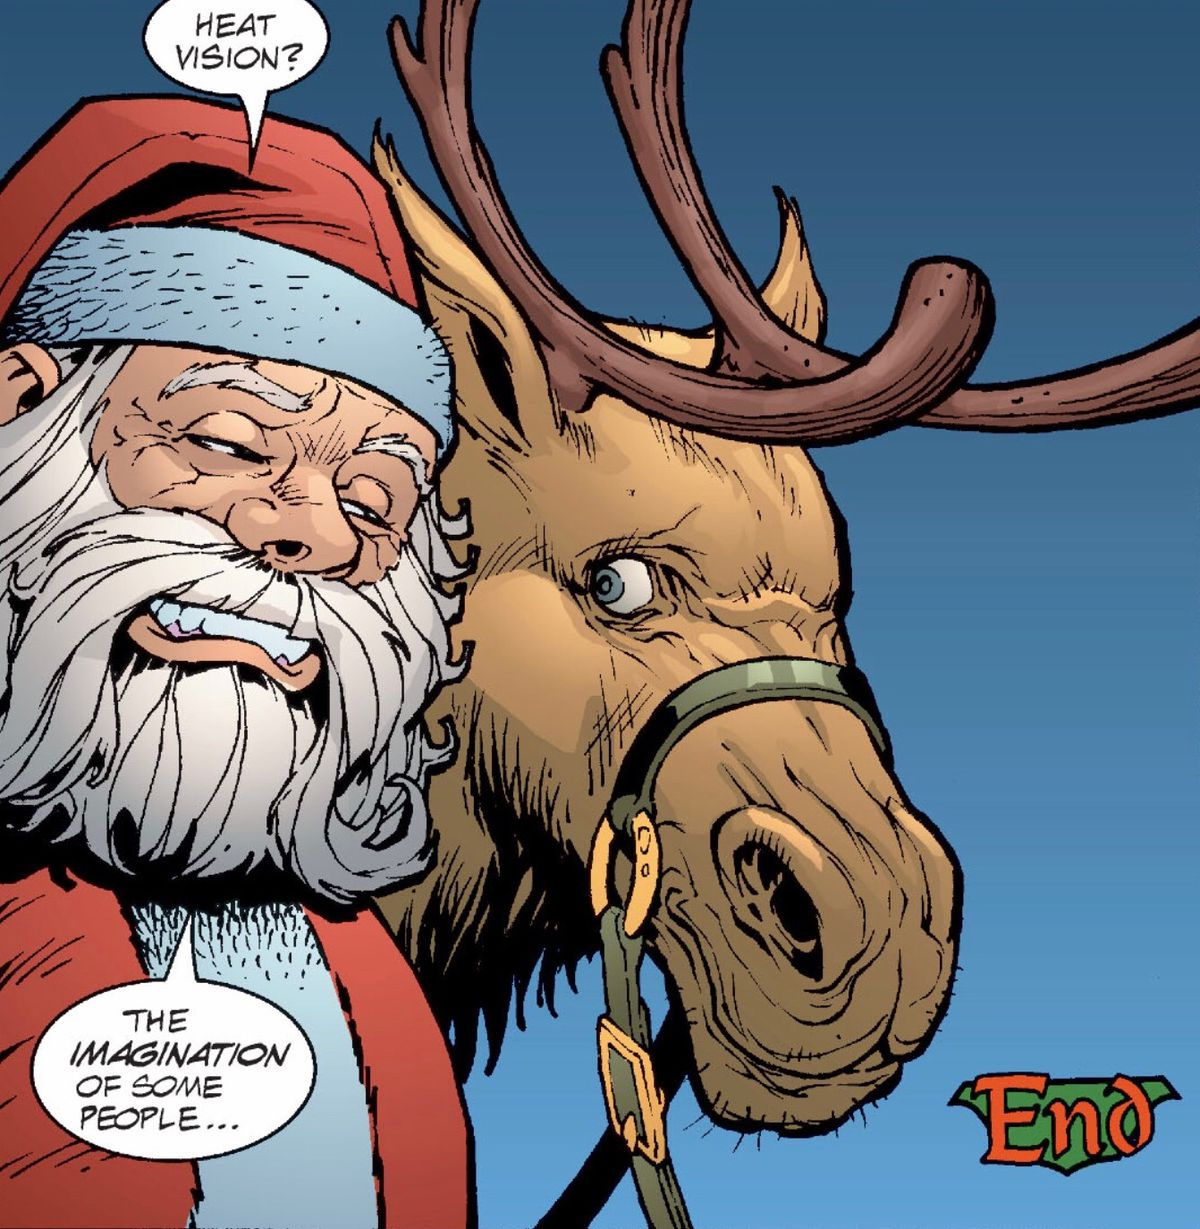 """""""Heat vision?"""" Santa says to a reindeer. """"The imagination of some people,"""" in JLA #60, DC Comics (2002)."""